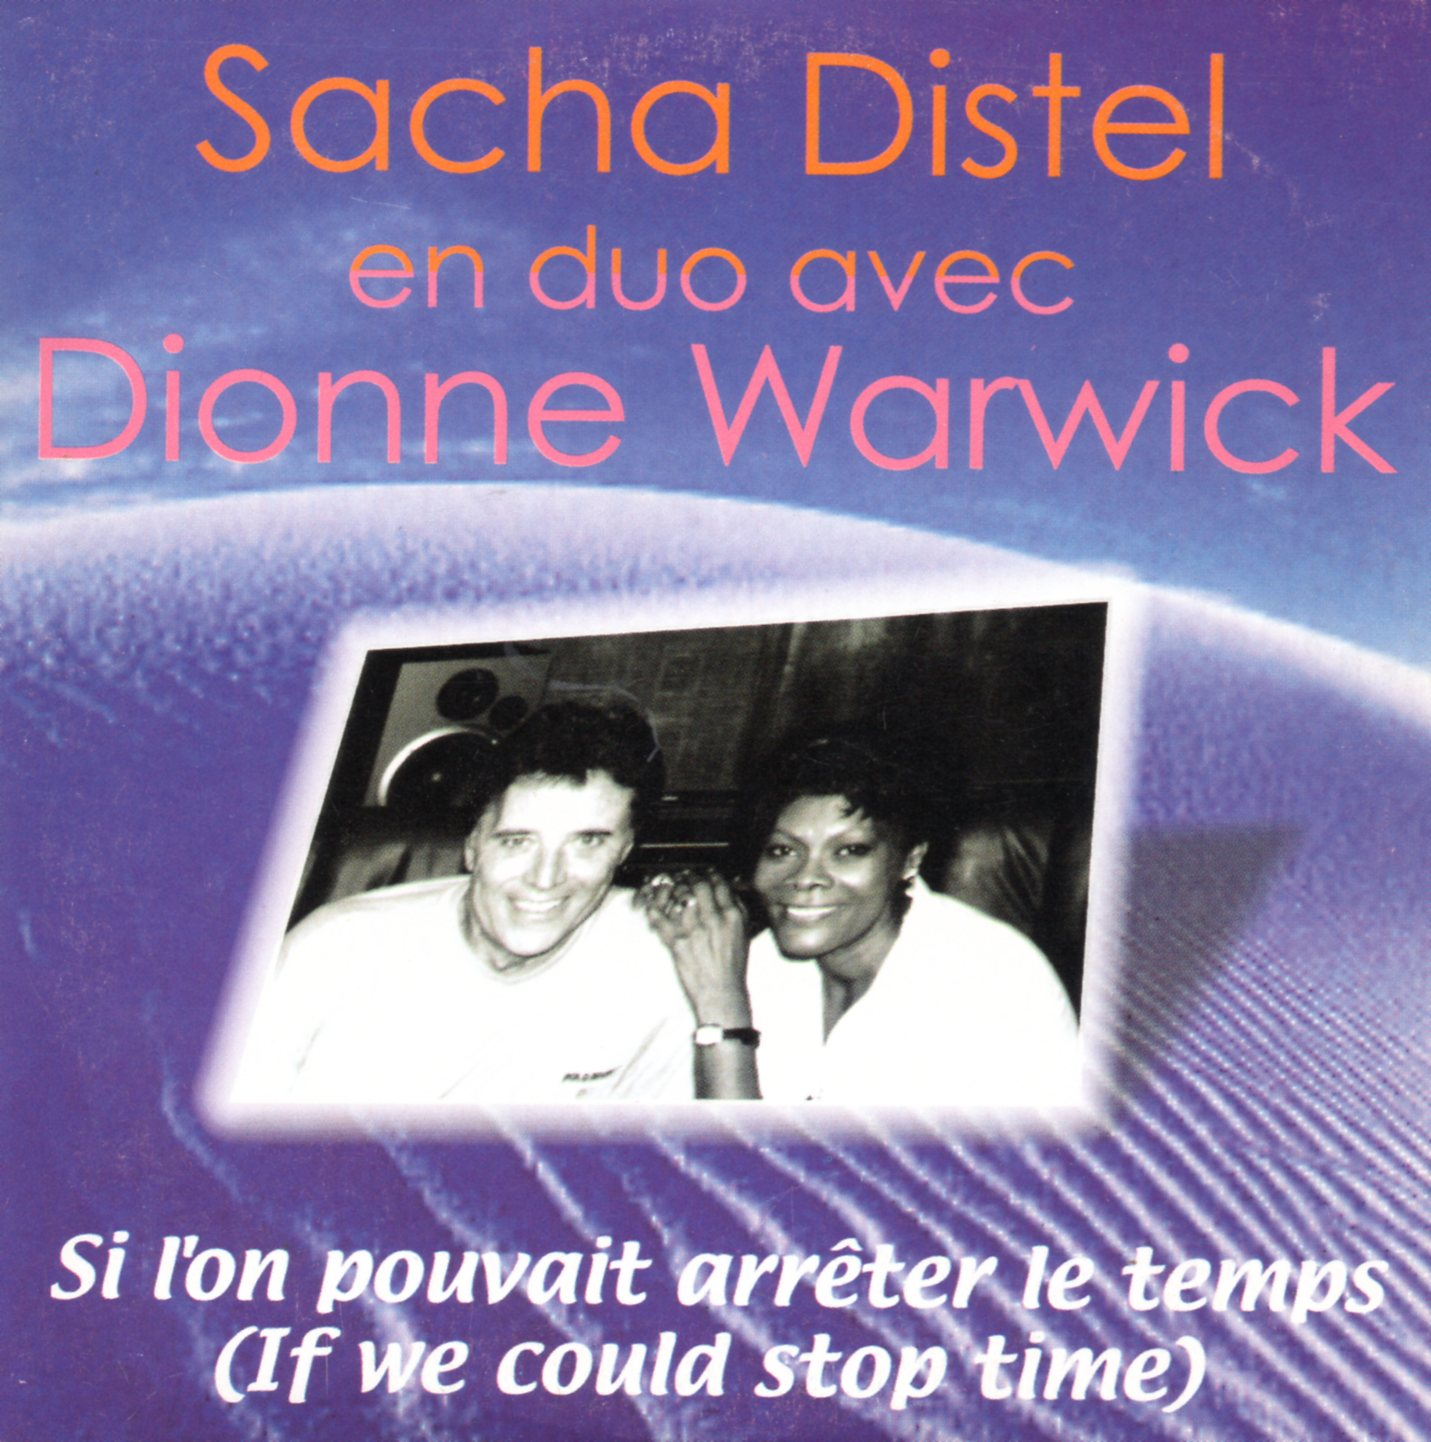 SACHA DISTEL & DIONNE WARWICK - Si l'on pouvait arrêter le temps 1-track  CARD SLEEVE - CD single